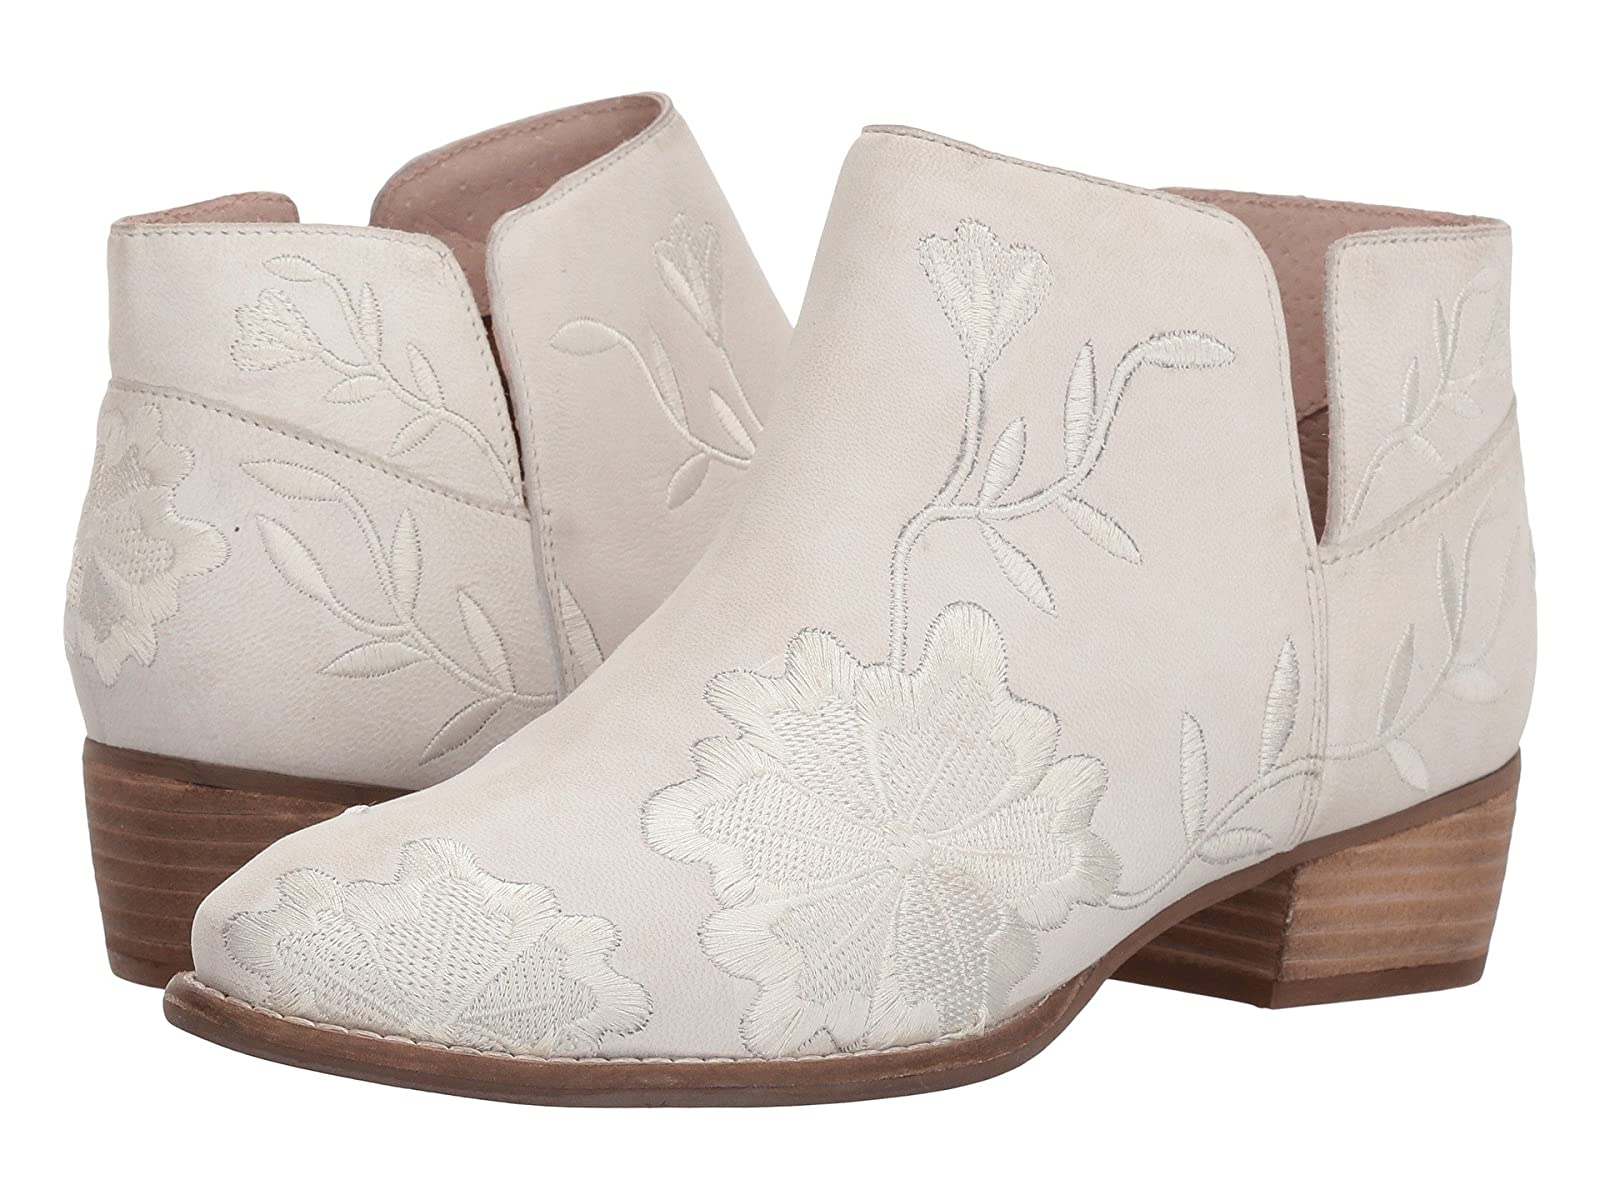 Seychelles LanternCheap and distinctive eye-catching shoes